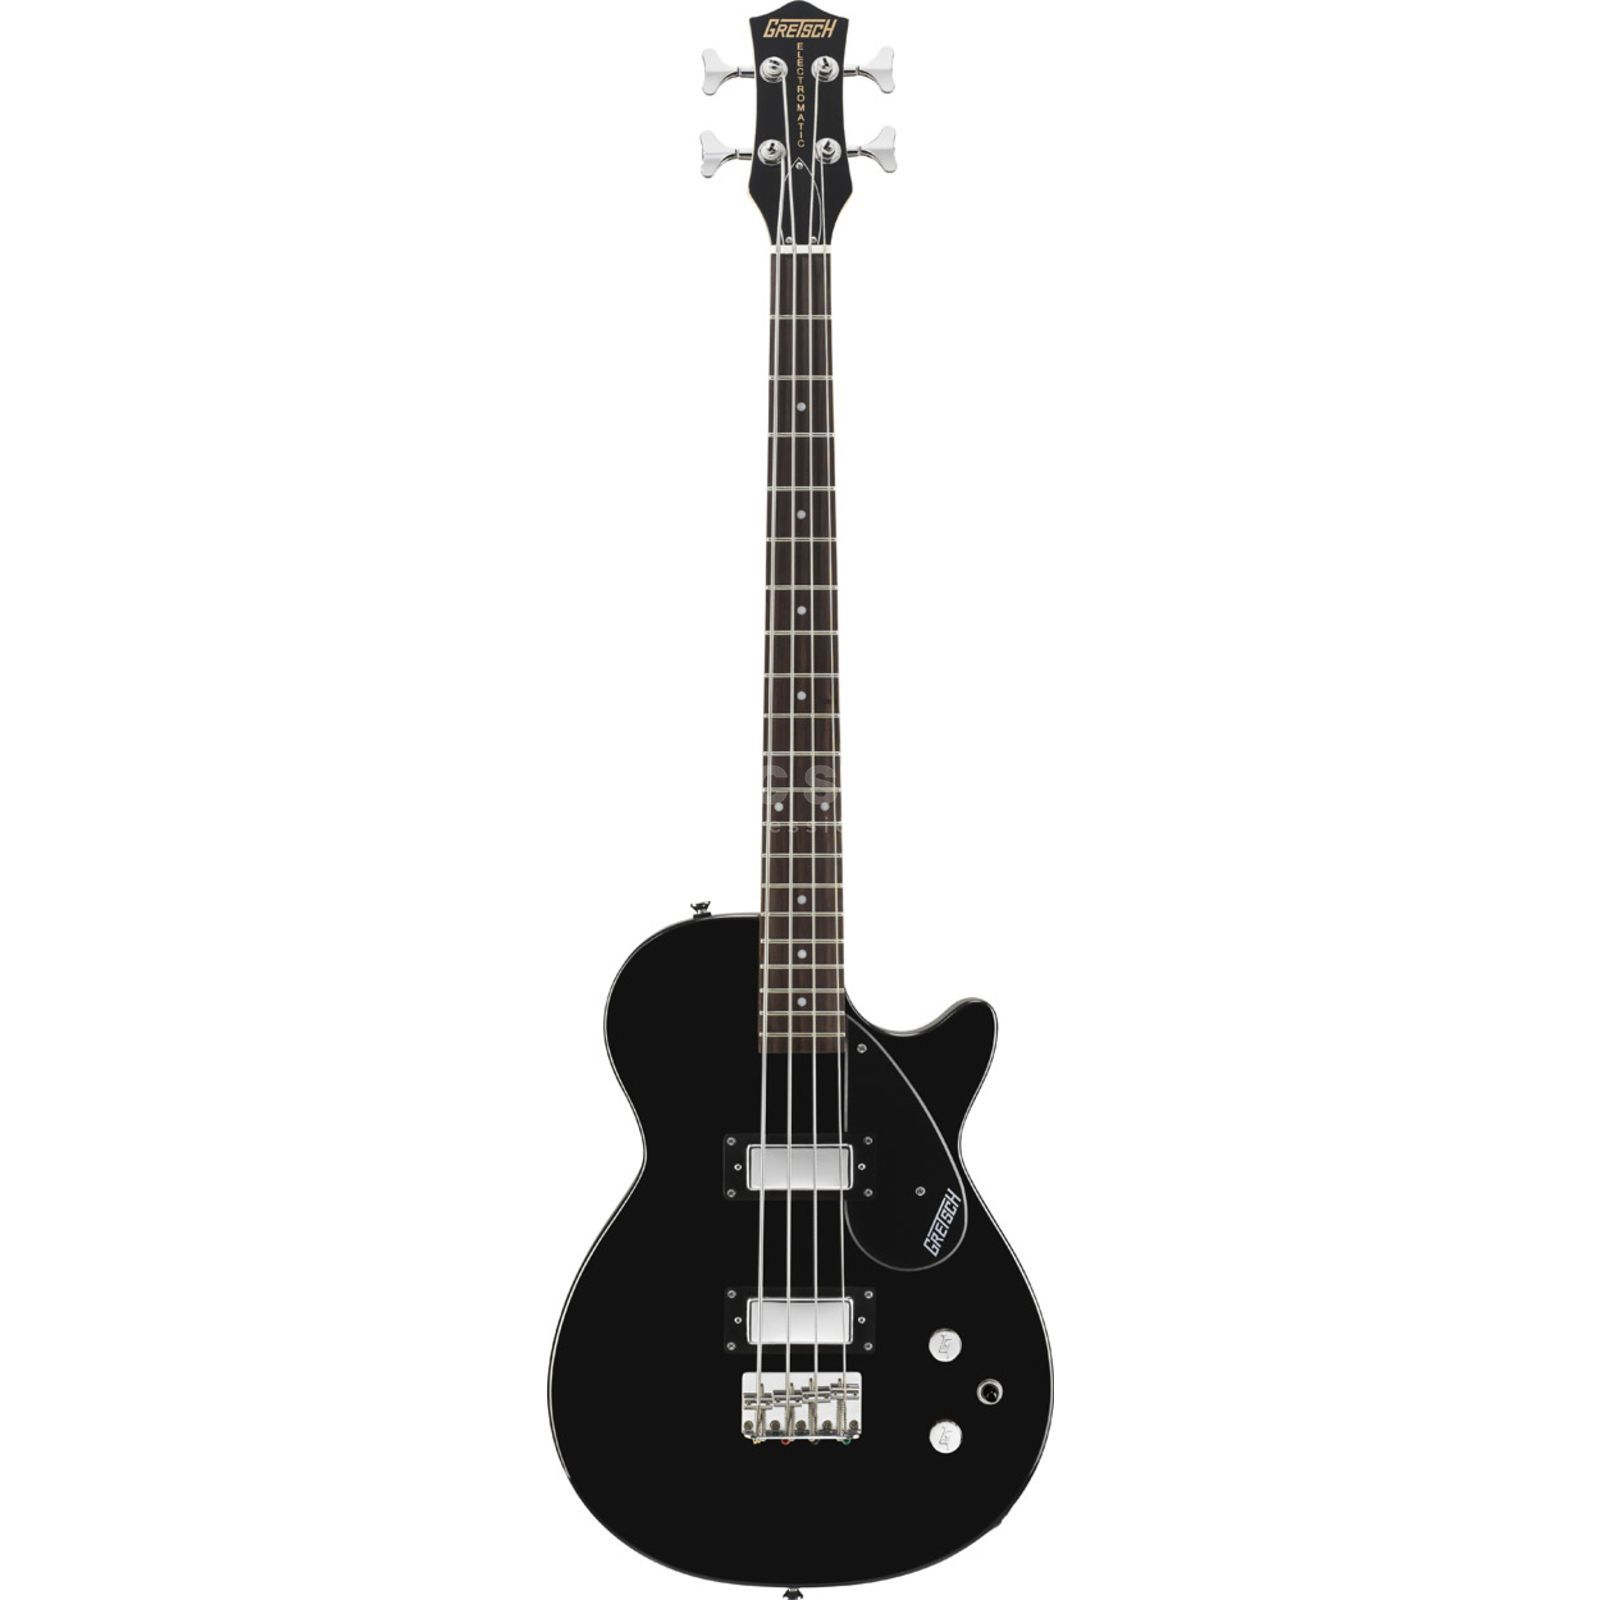 Gretsch G2220 Junior Jet Bass II BK Black Image du produit